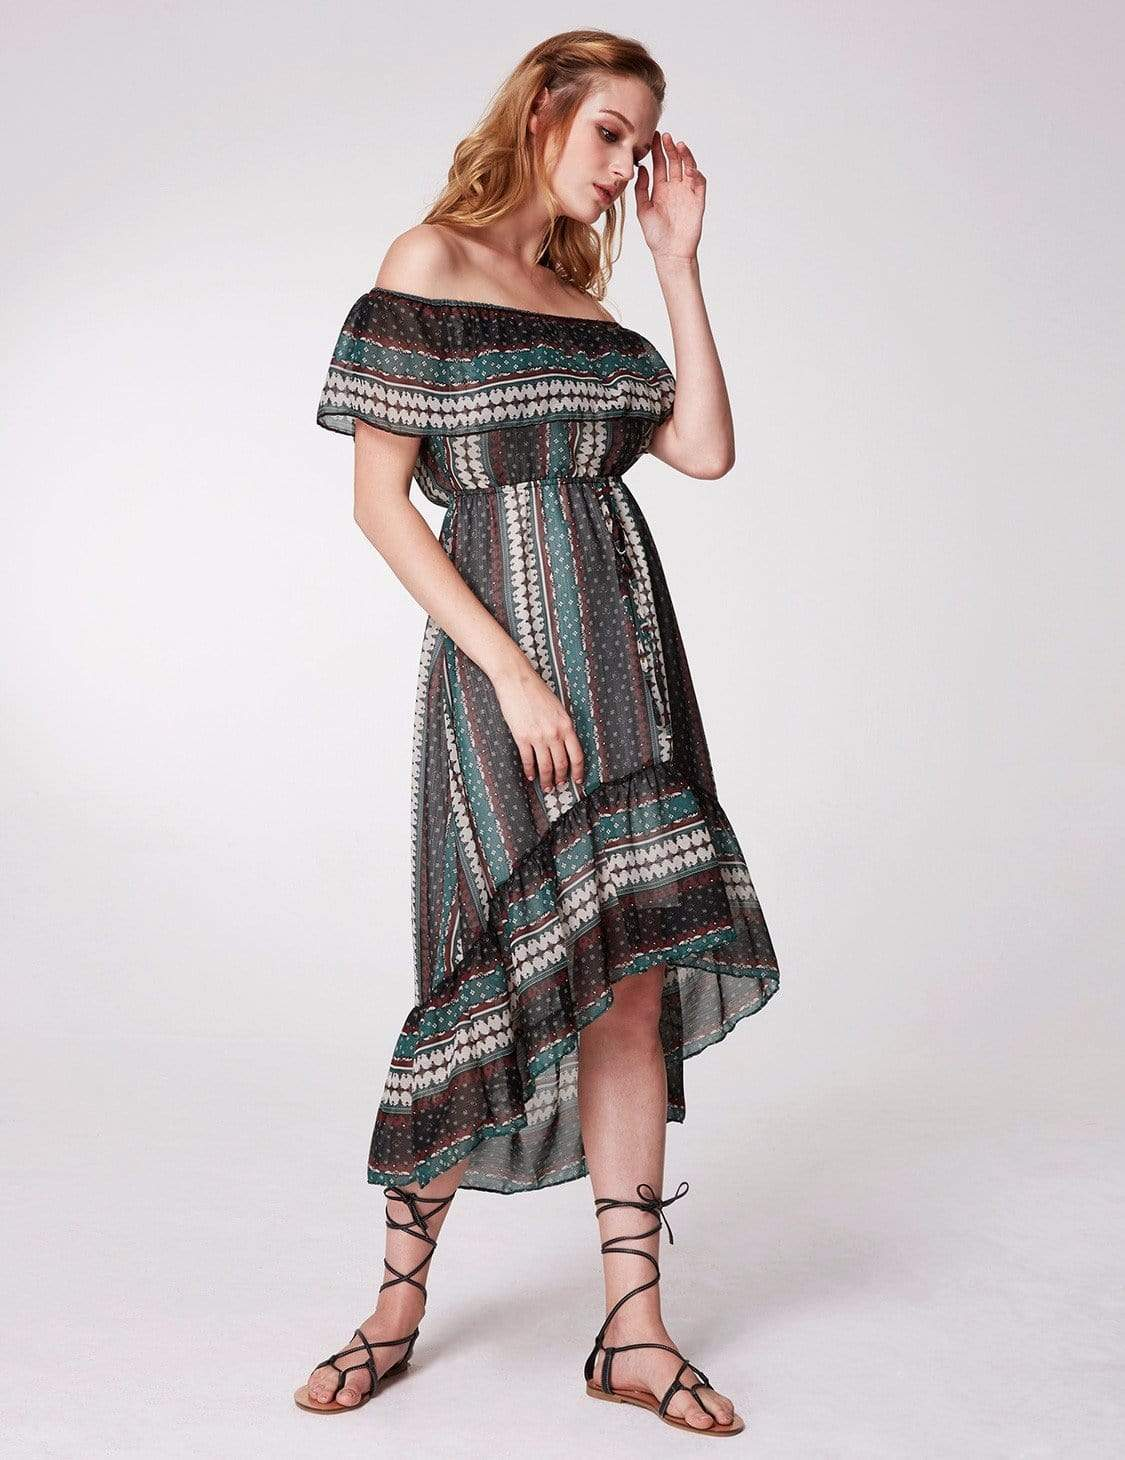 499ea82240 Alisa Pan Off Shoulder Printed Boho Dress|Ever-Pretty - Ever Pretty EU